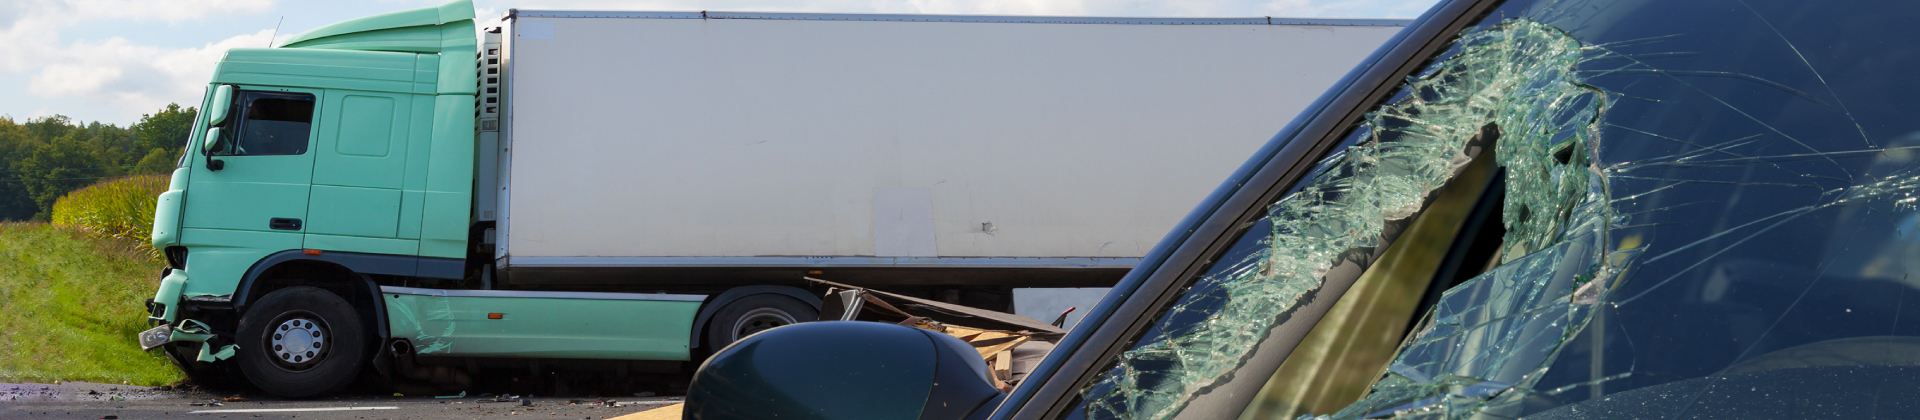 Philadelphia Truck Accident Lawyers | 18 Wheelers & Tractor Trailers